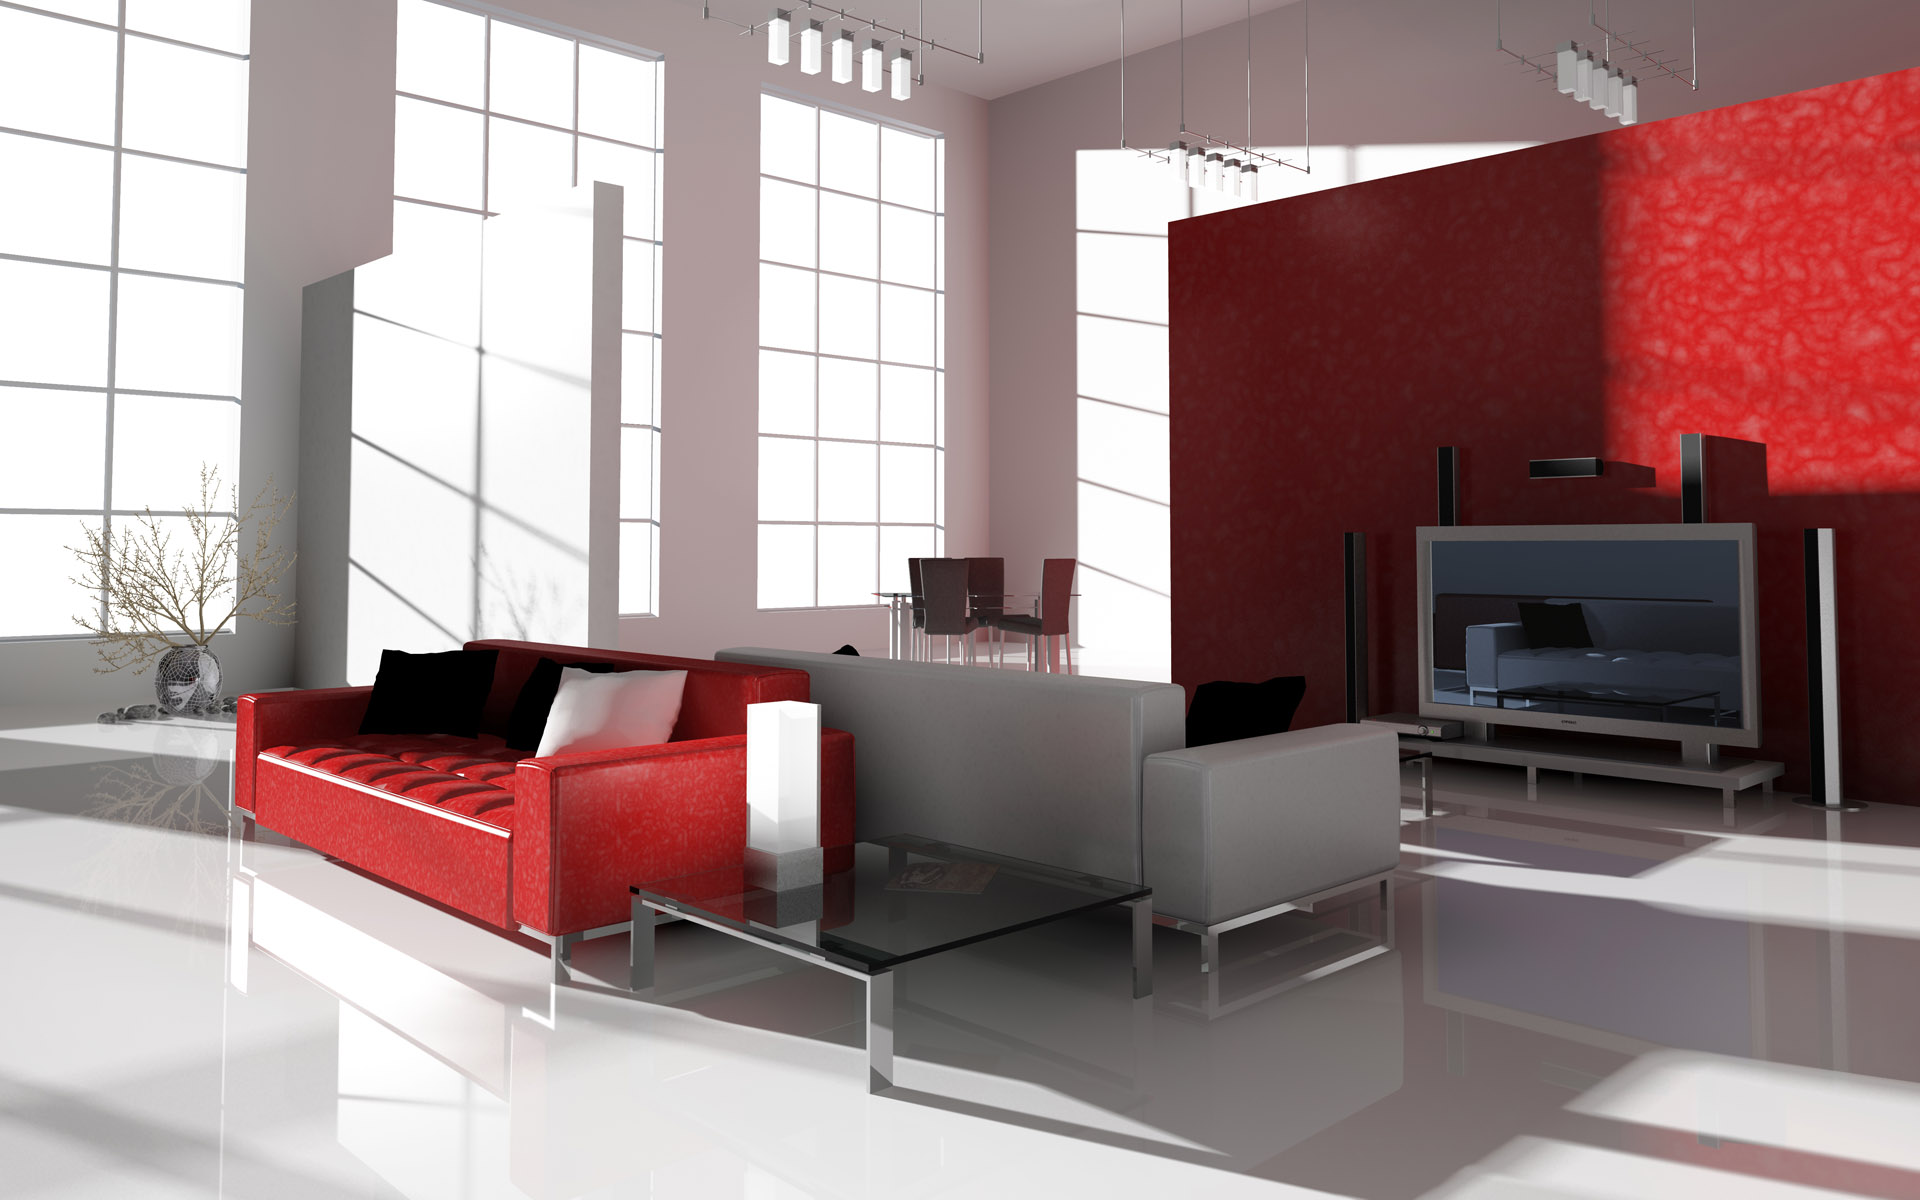 Living Room Modern Home Interior luxury modern interior home homesfeed tv sofas pillows rug designing your interior